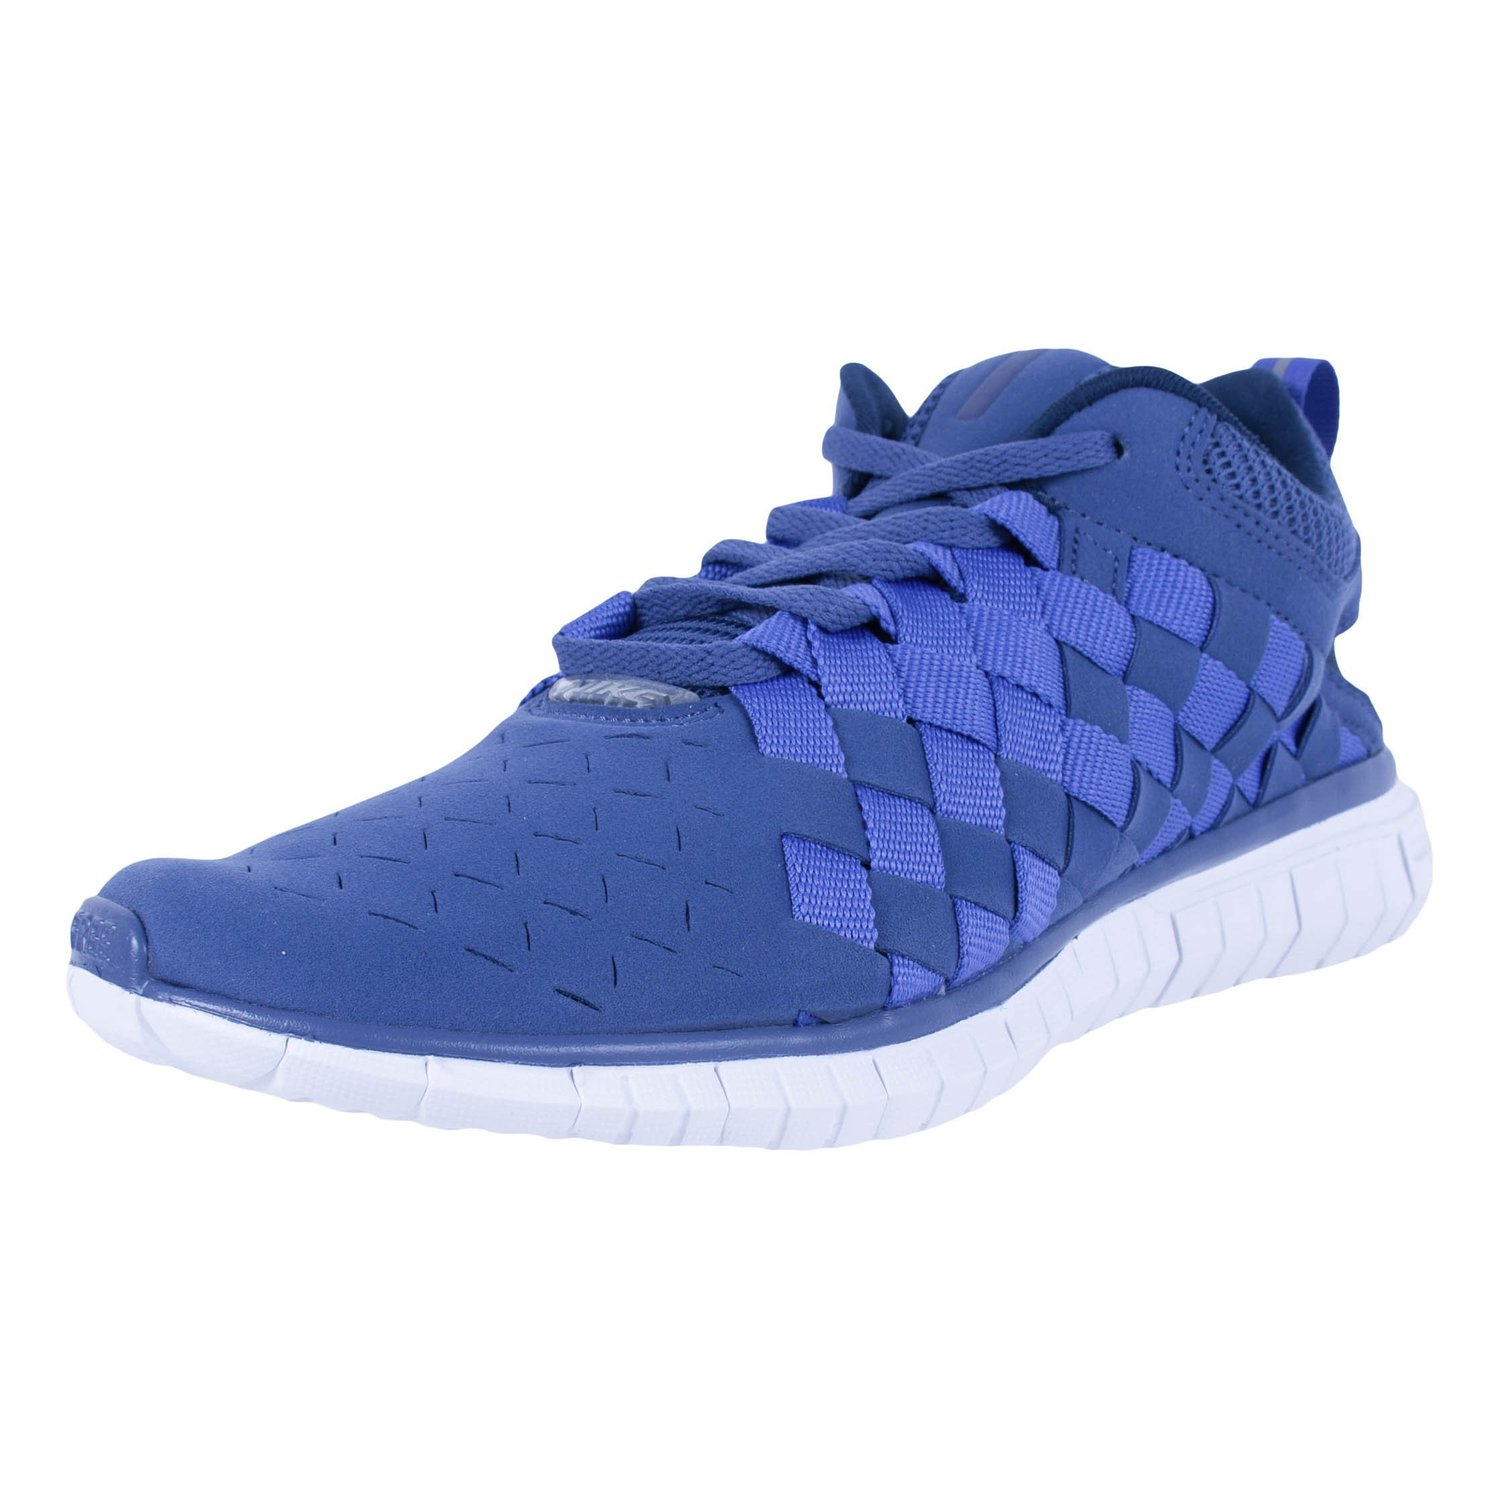 the latest 0db29 af652 ... usa nike free og 14 woven mens running trainers 725070 sneakers shoes  3a909 c8572